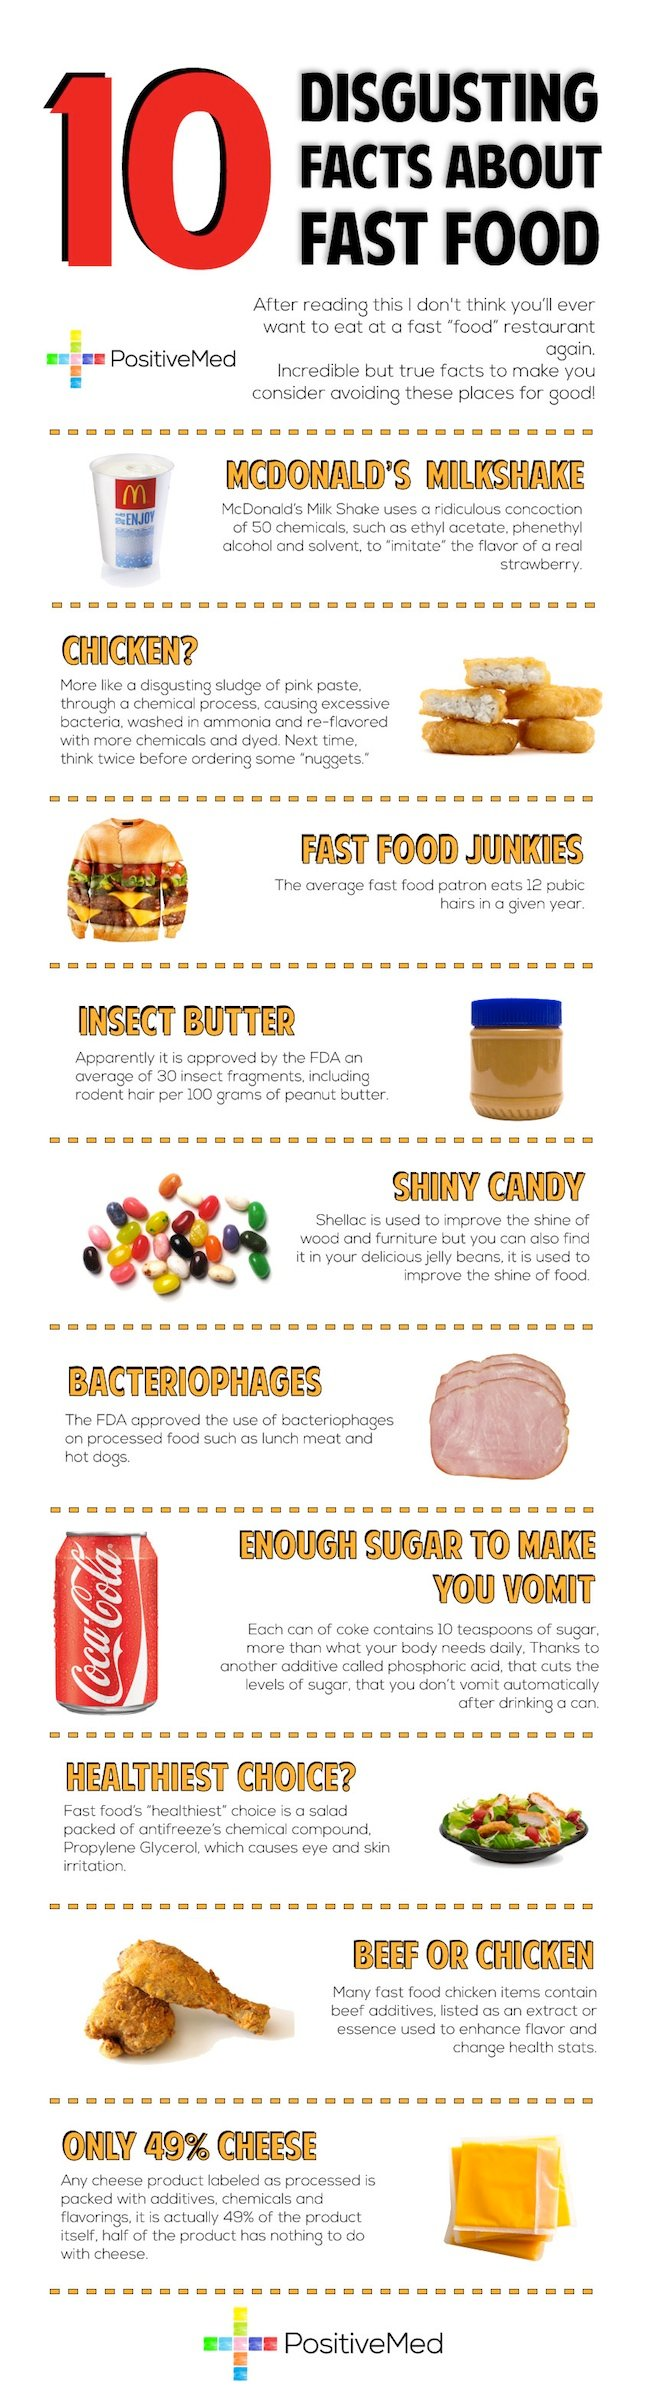 disgusting facts about fast food 1